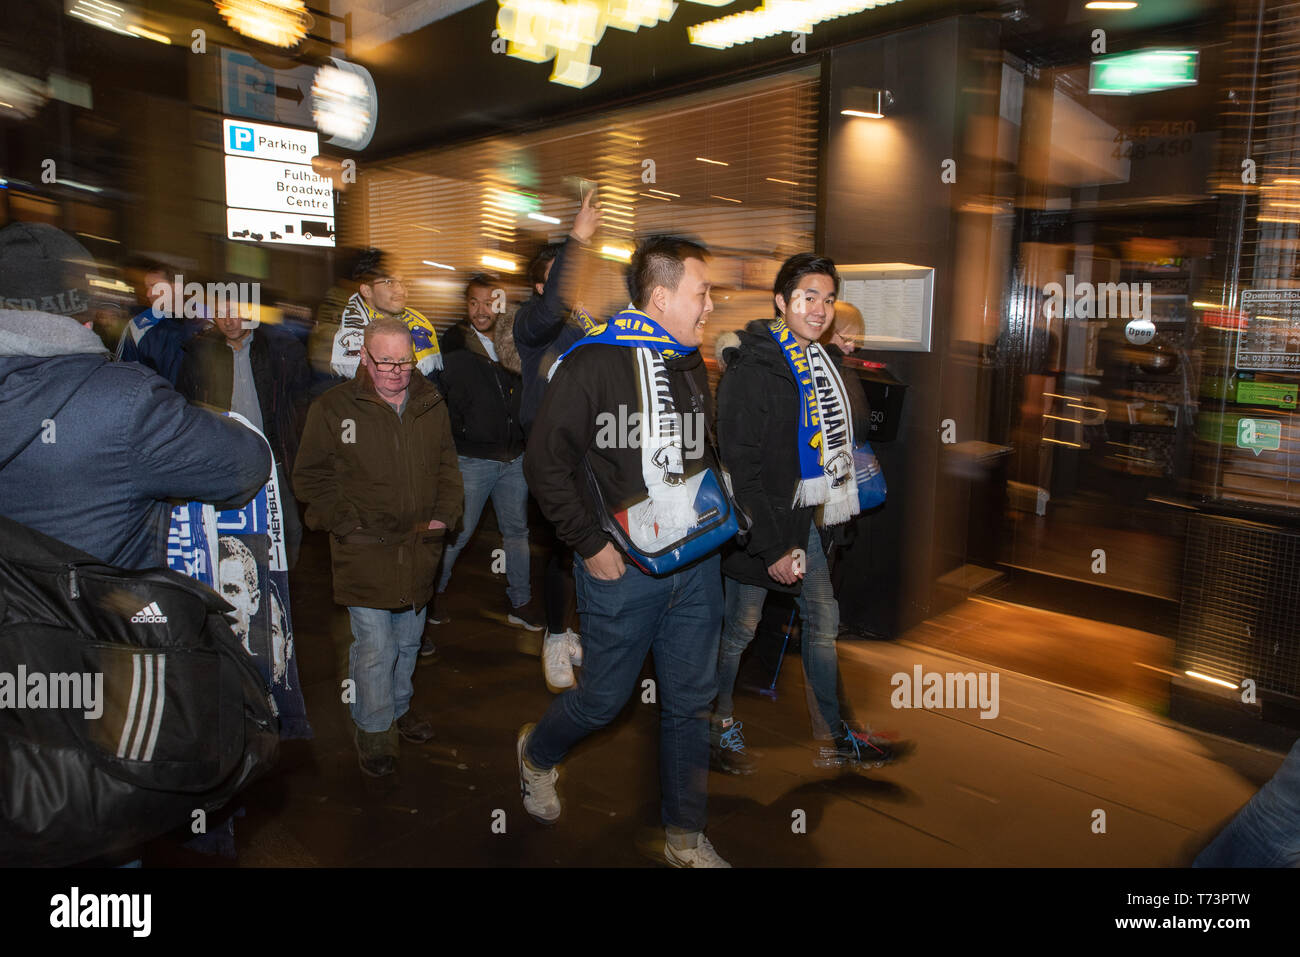 Asian supporters arrive at a game between Chelsea and Tottenham Hotspur. 24 janvier 2019 - Stock Image